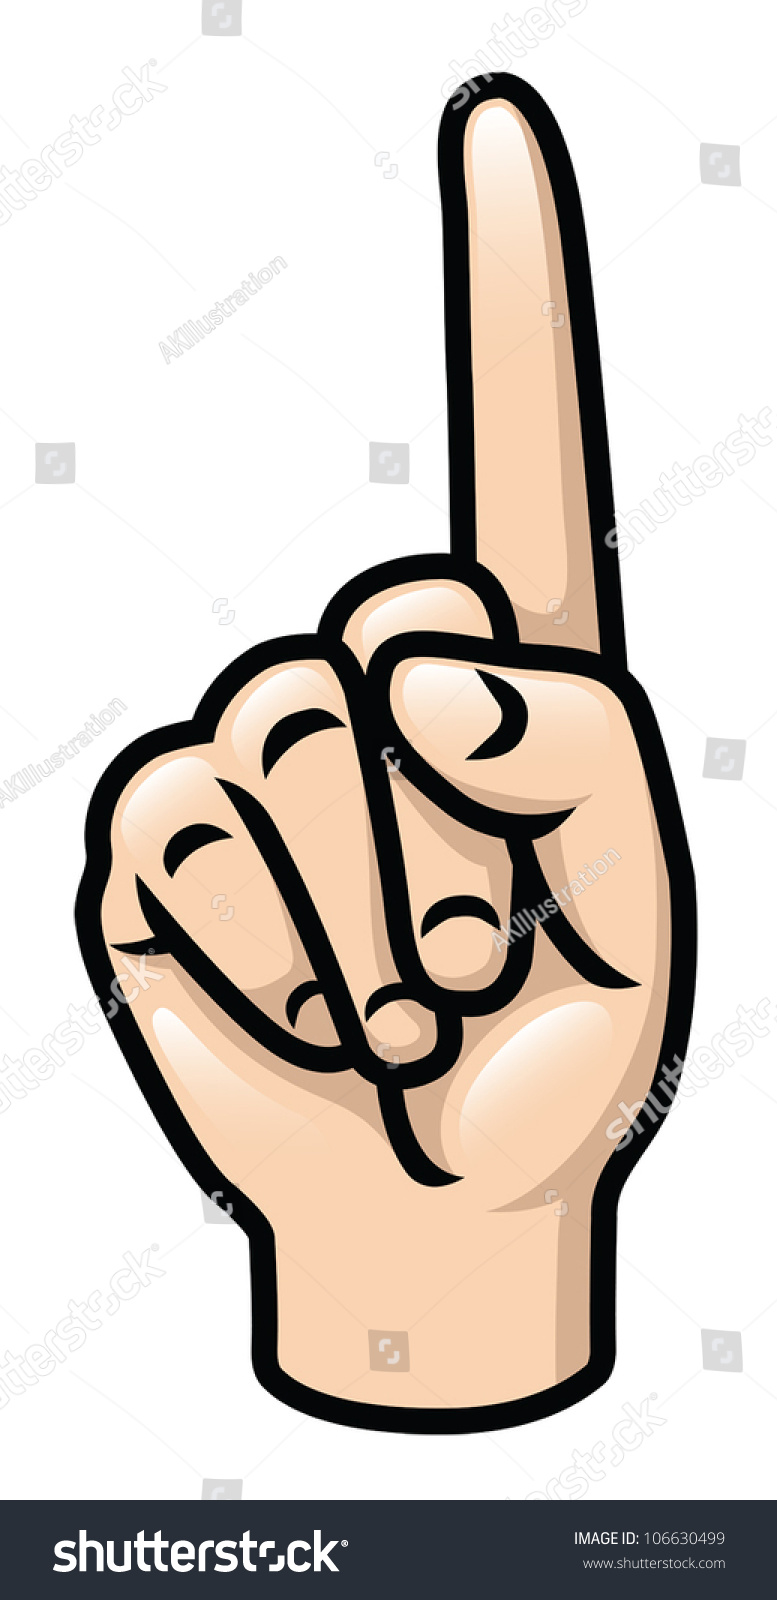 Illustration Of A Cartoon Hand Holding Up One Finger. Eps